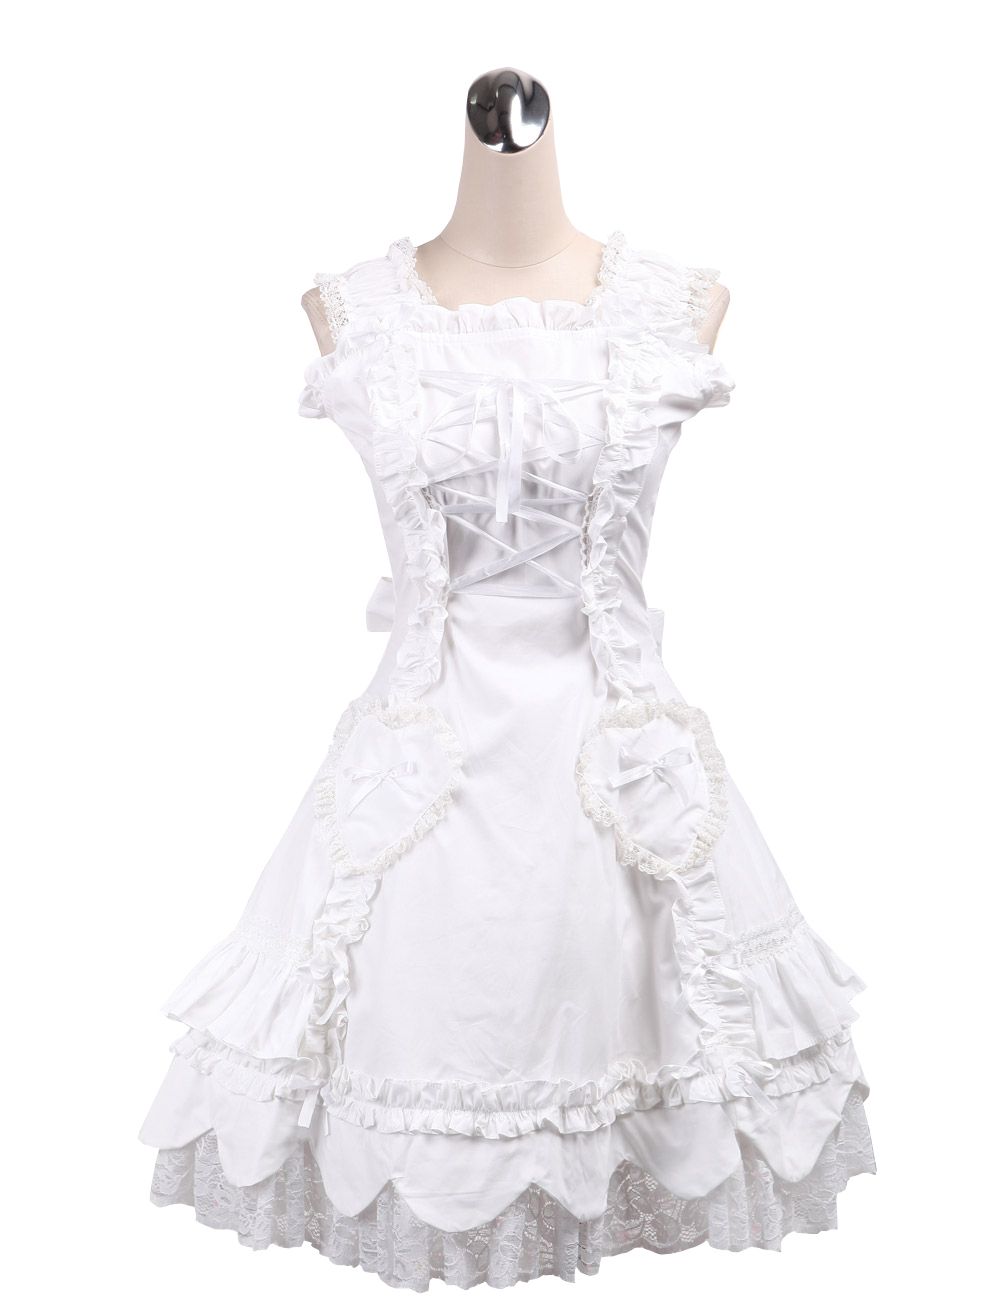 Primary image for ZeroMart White Cotton Halter Lace Ruffles Vintage Victorian Sweet Lolita Dress